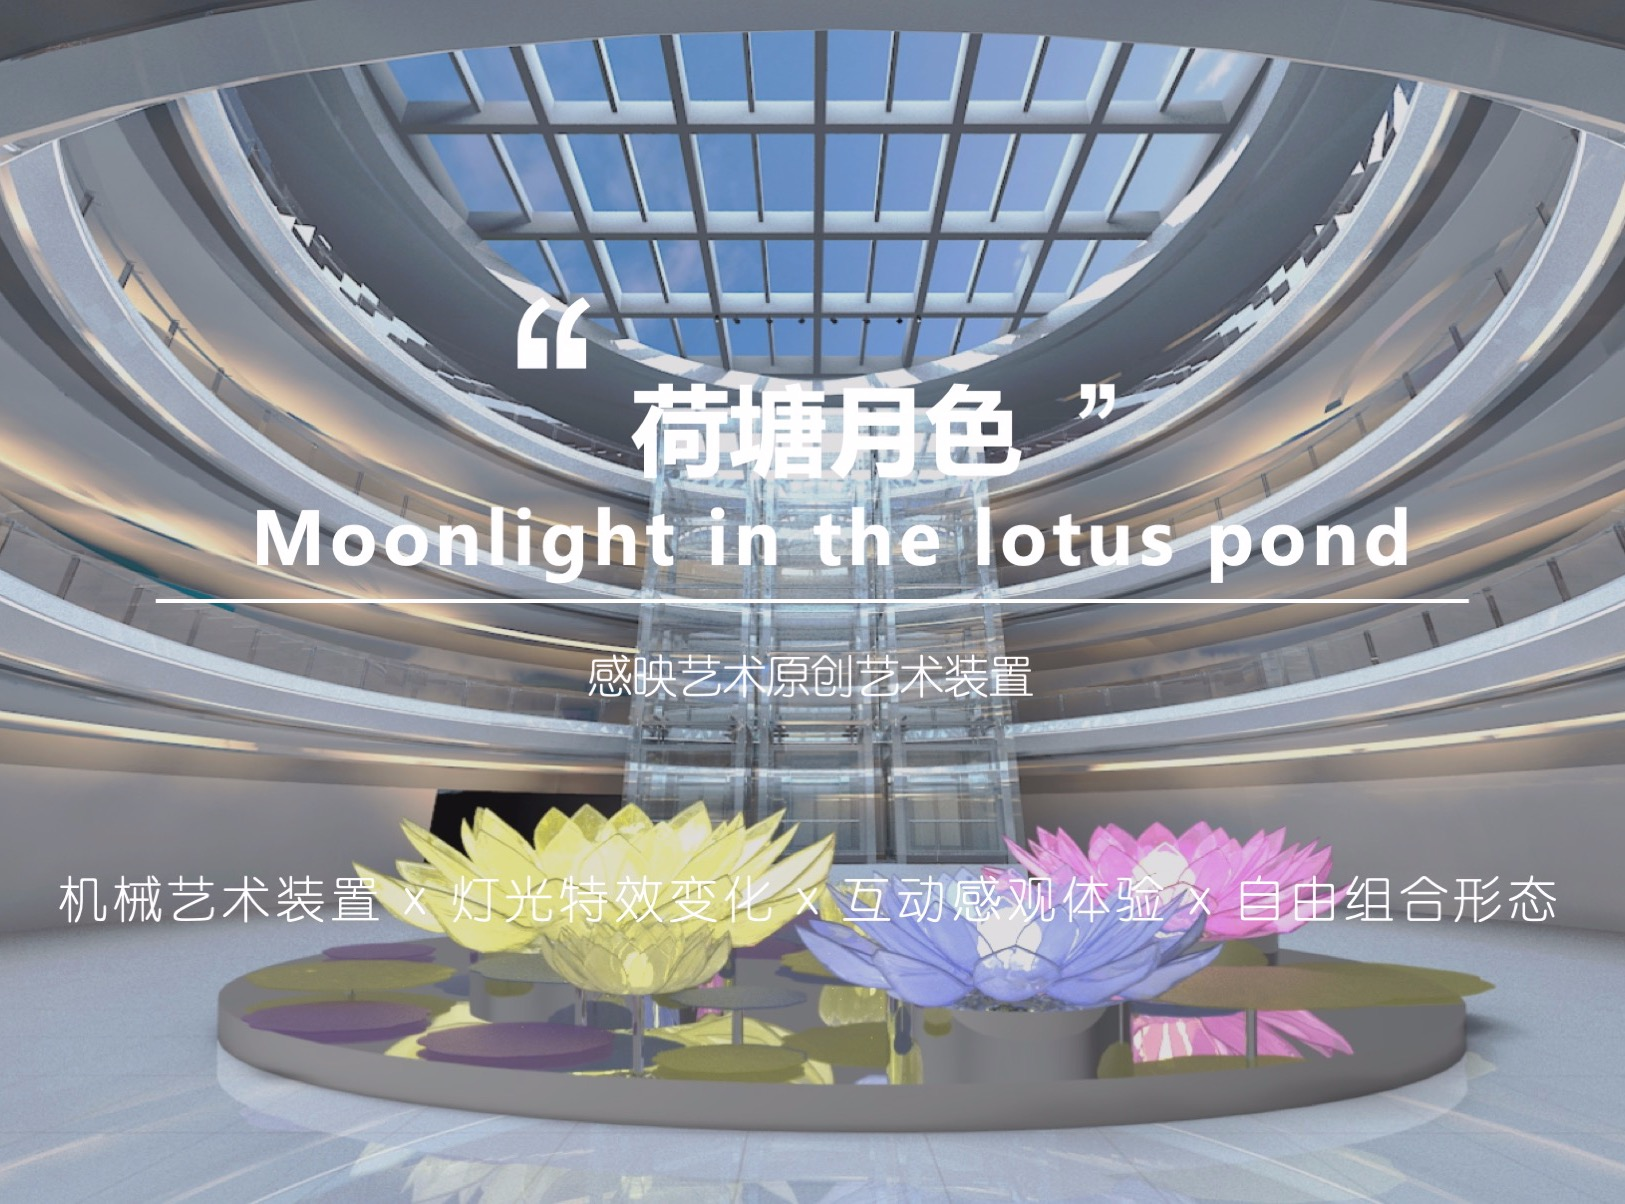 荷塘月色 Moonlight in lotus pond